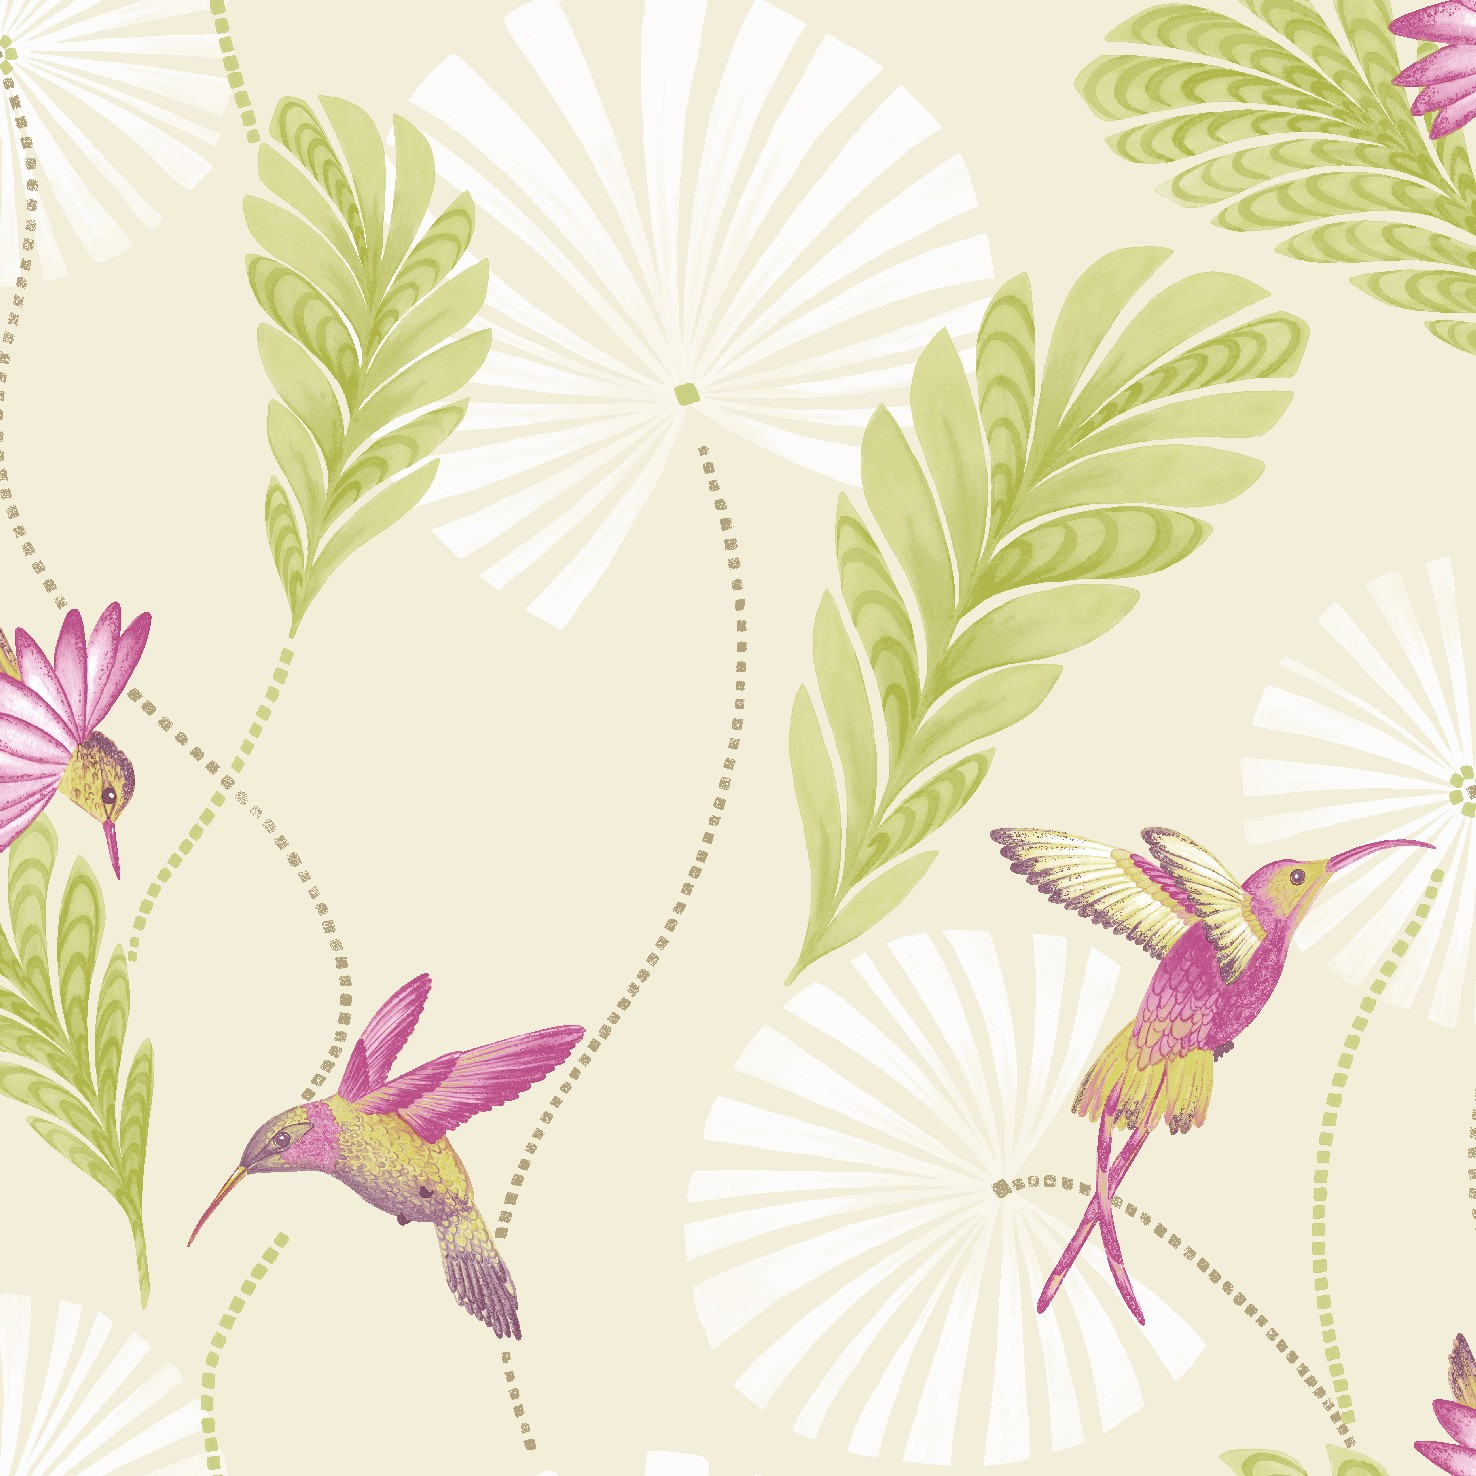 bird wallpaper designs displaying 14 images for bird wallpaper designs 1476x1476